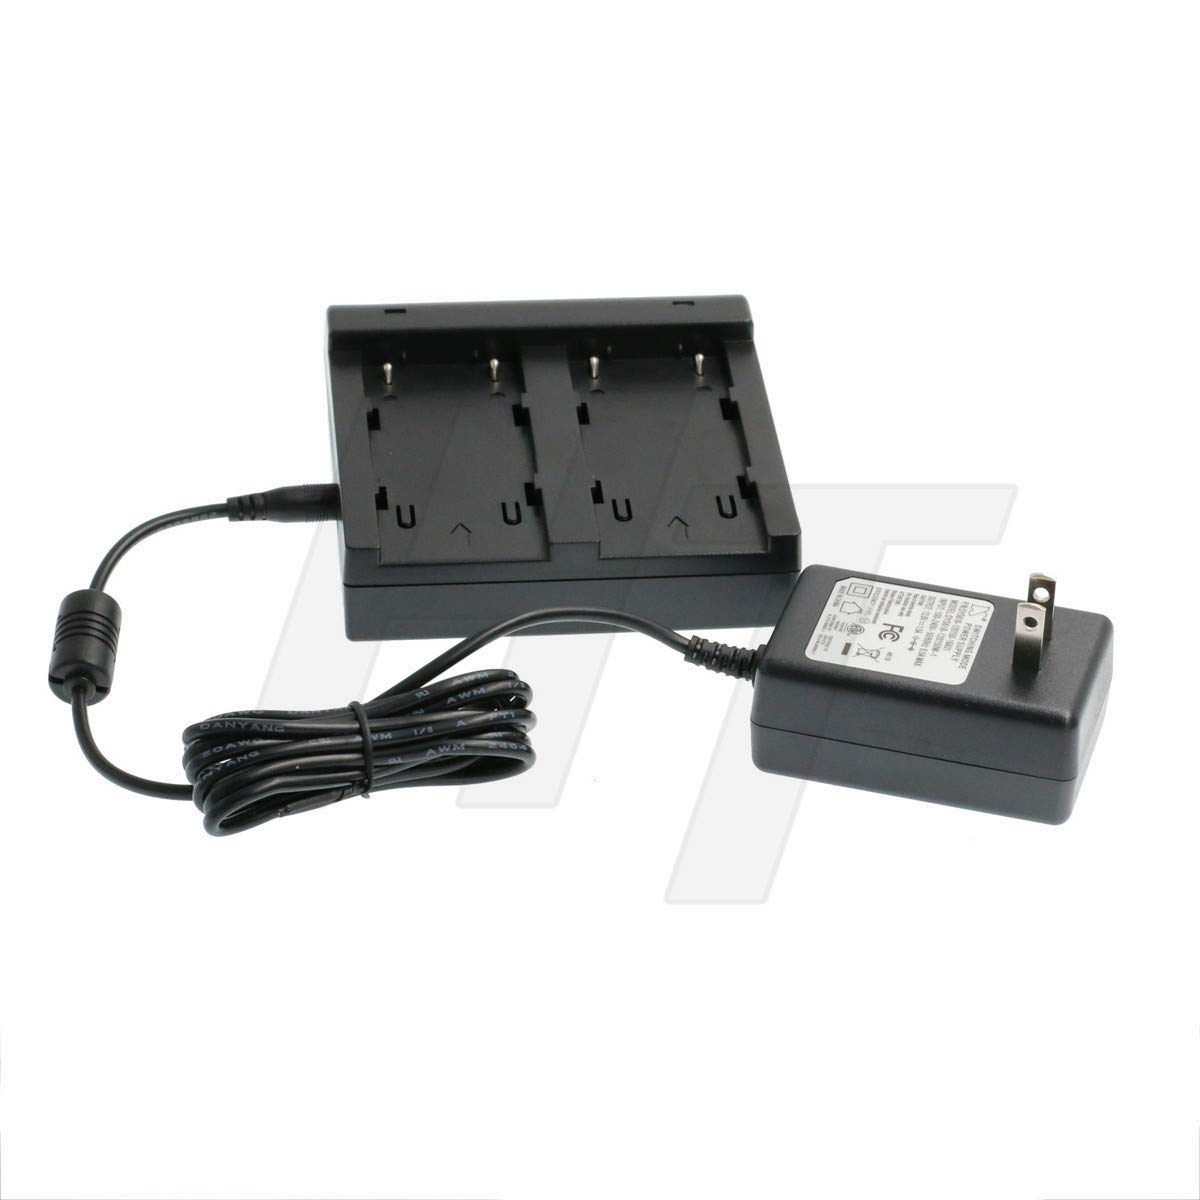 BC-30D 54344 Battery Dual Charger Power Adapter for Trimble GPS 5700,5800,R7,R8 GNSS Series, Topcon BT-62Q BT-65Q BT-66Q